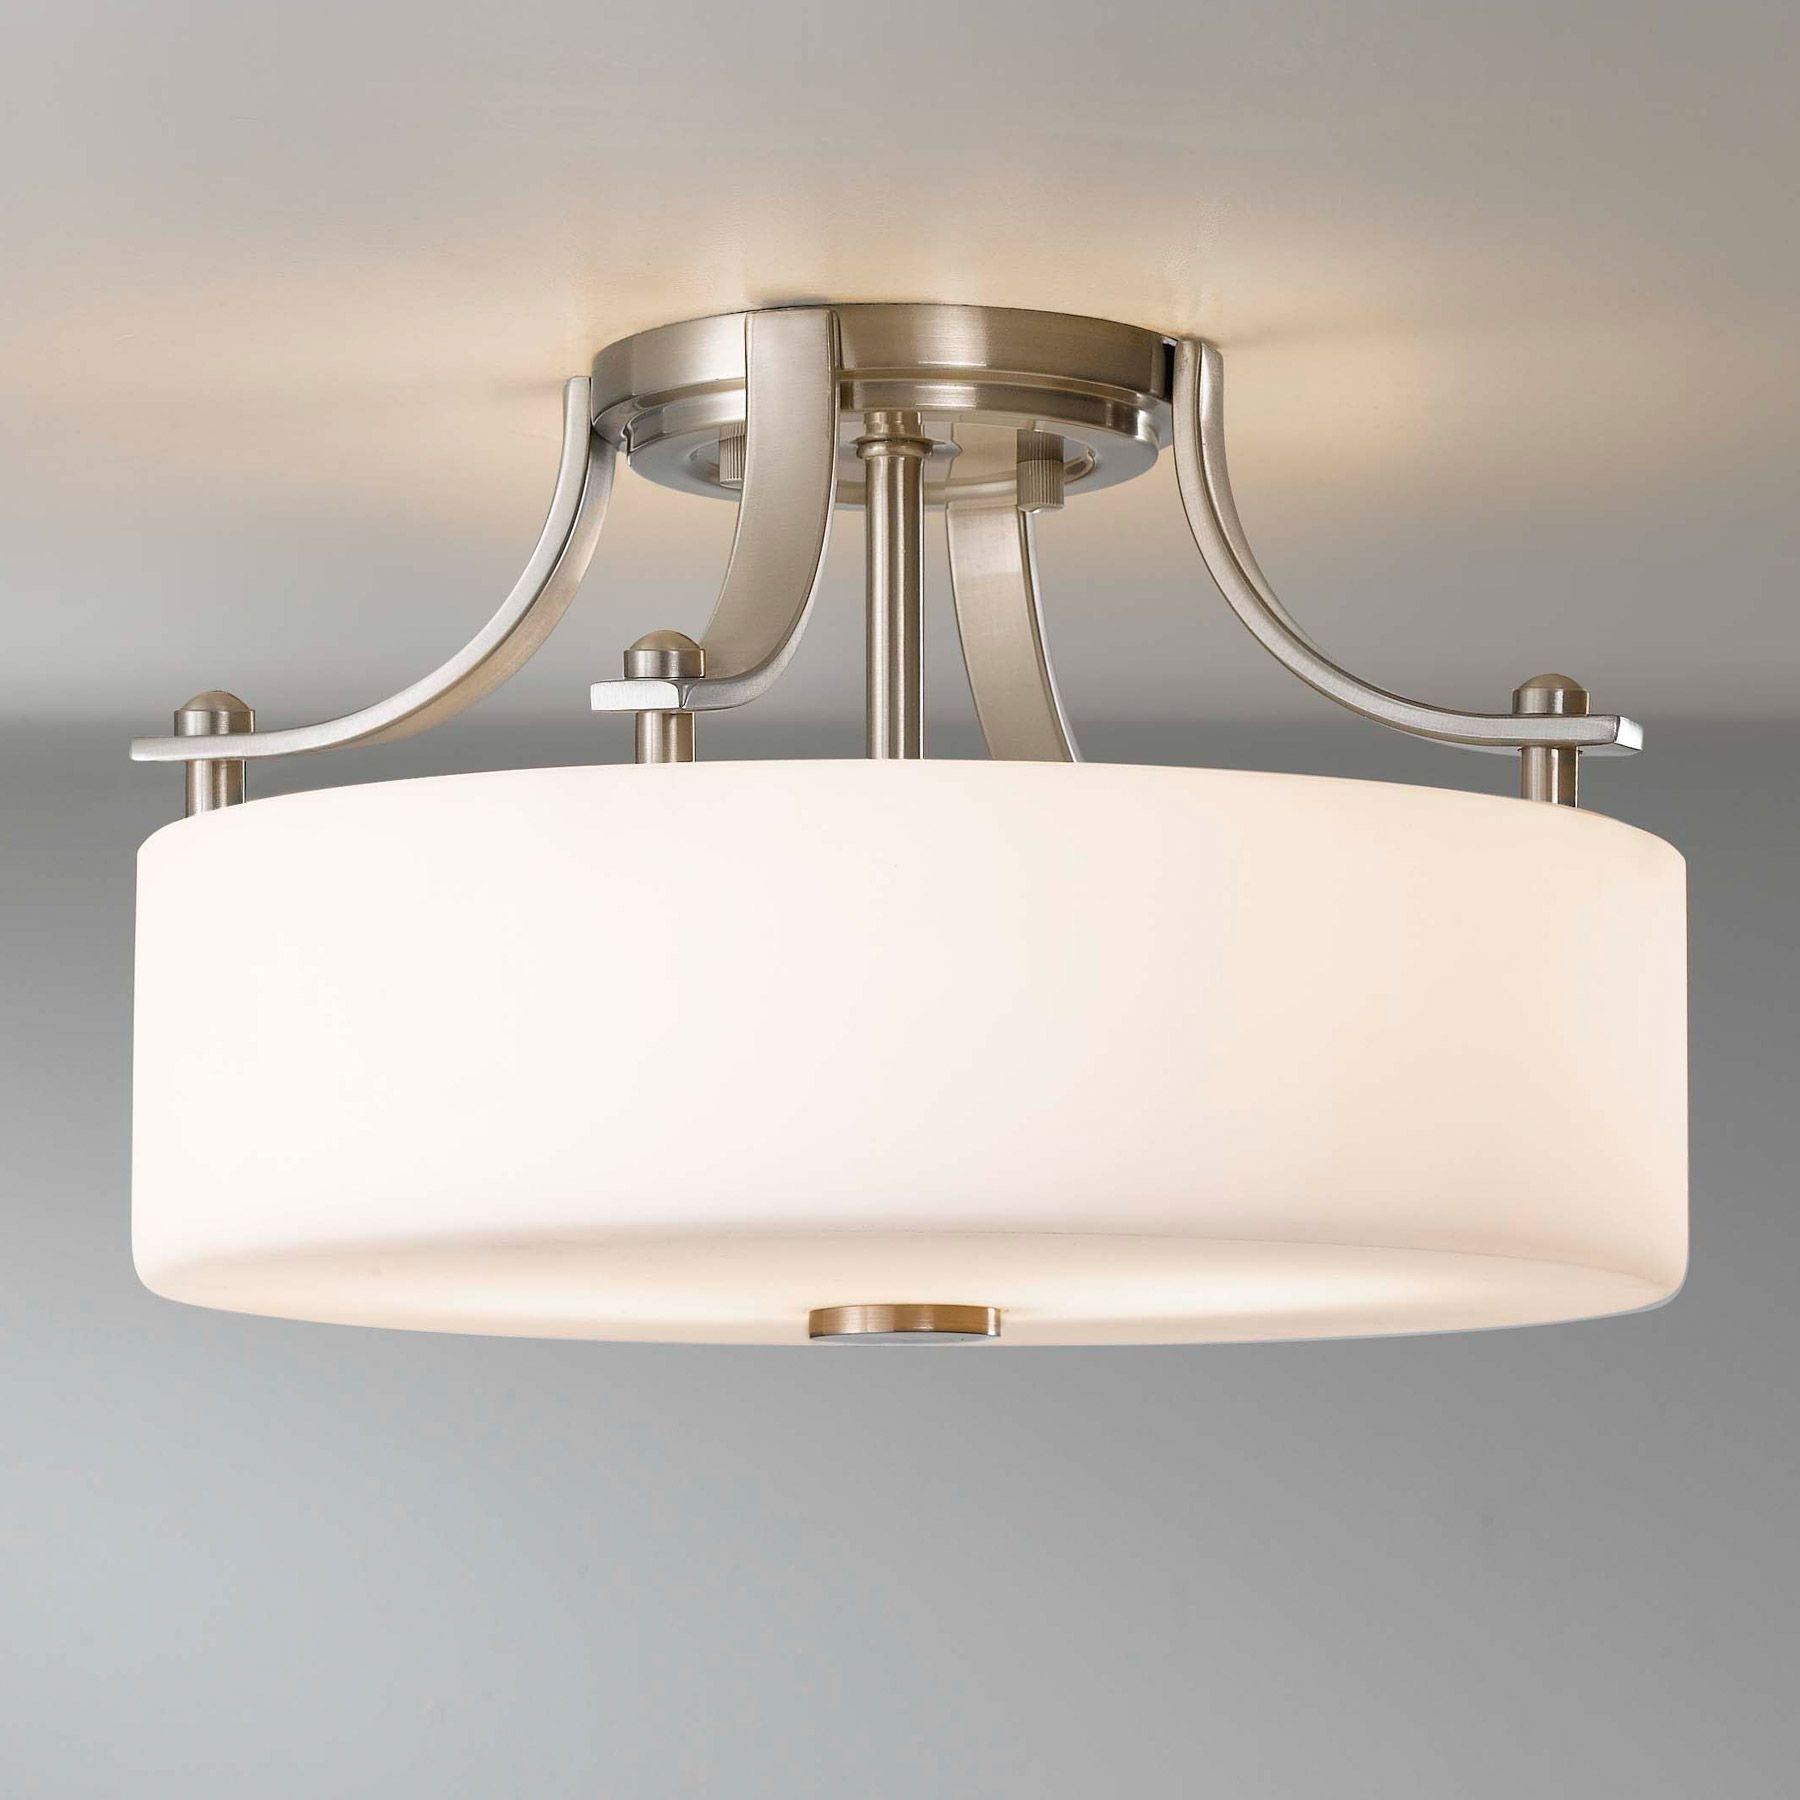 Superieur White FlushMount Light Fixture